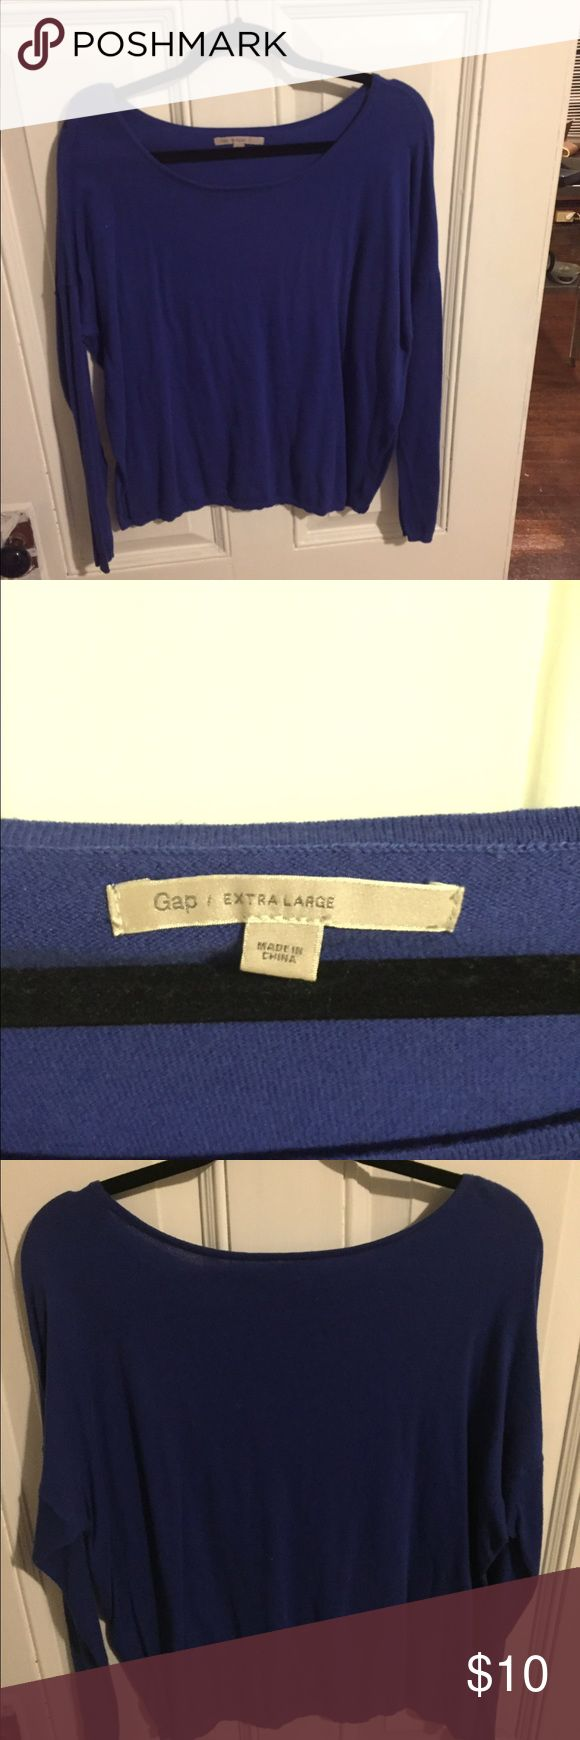 Royal Blue Gap Sweater XL royal blue sweater, great for layering. Size XL. Great condition, ships in 1-2 days. GAP Sweaters Crew & Scoop Necks